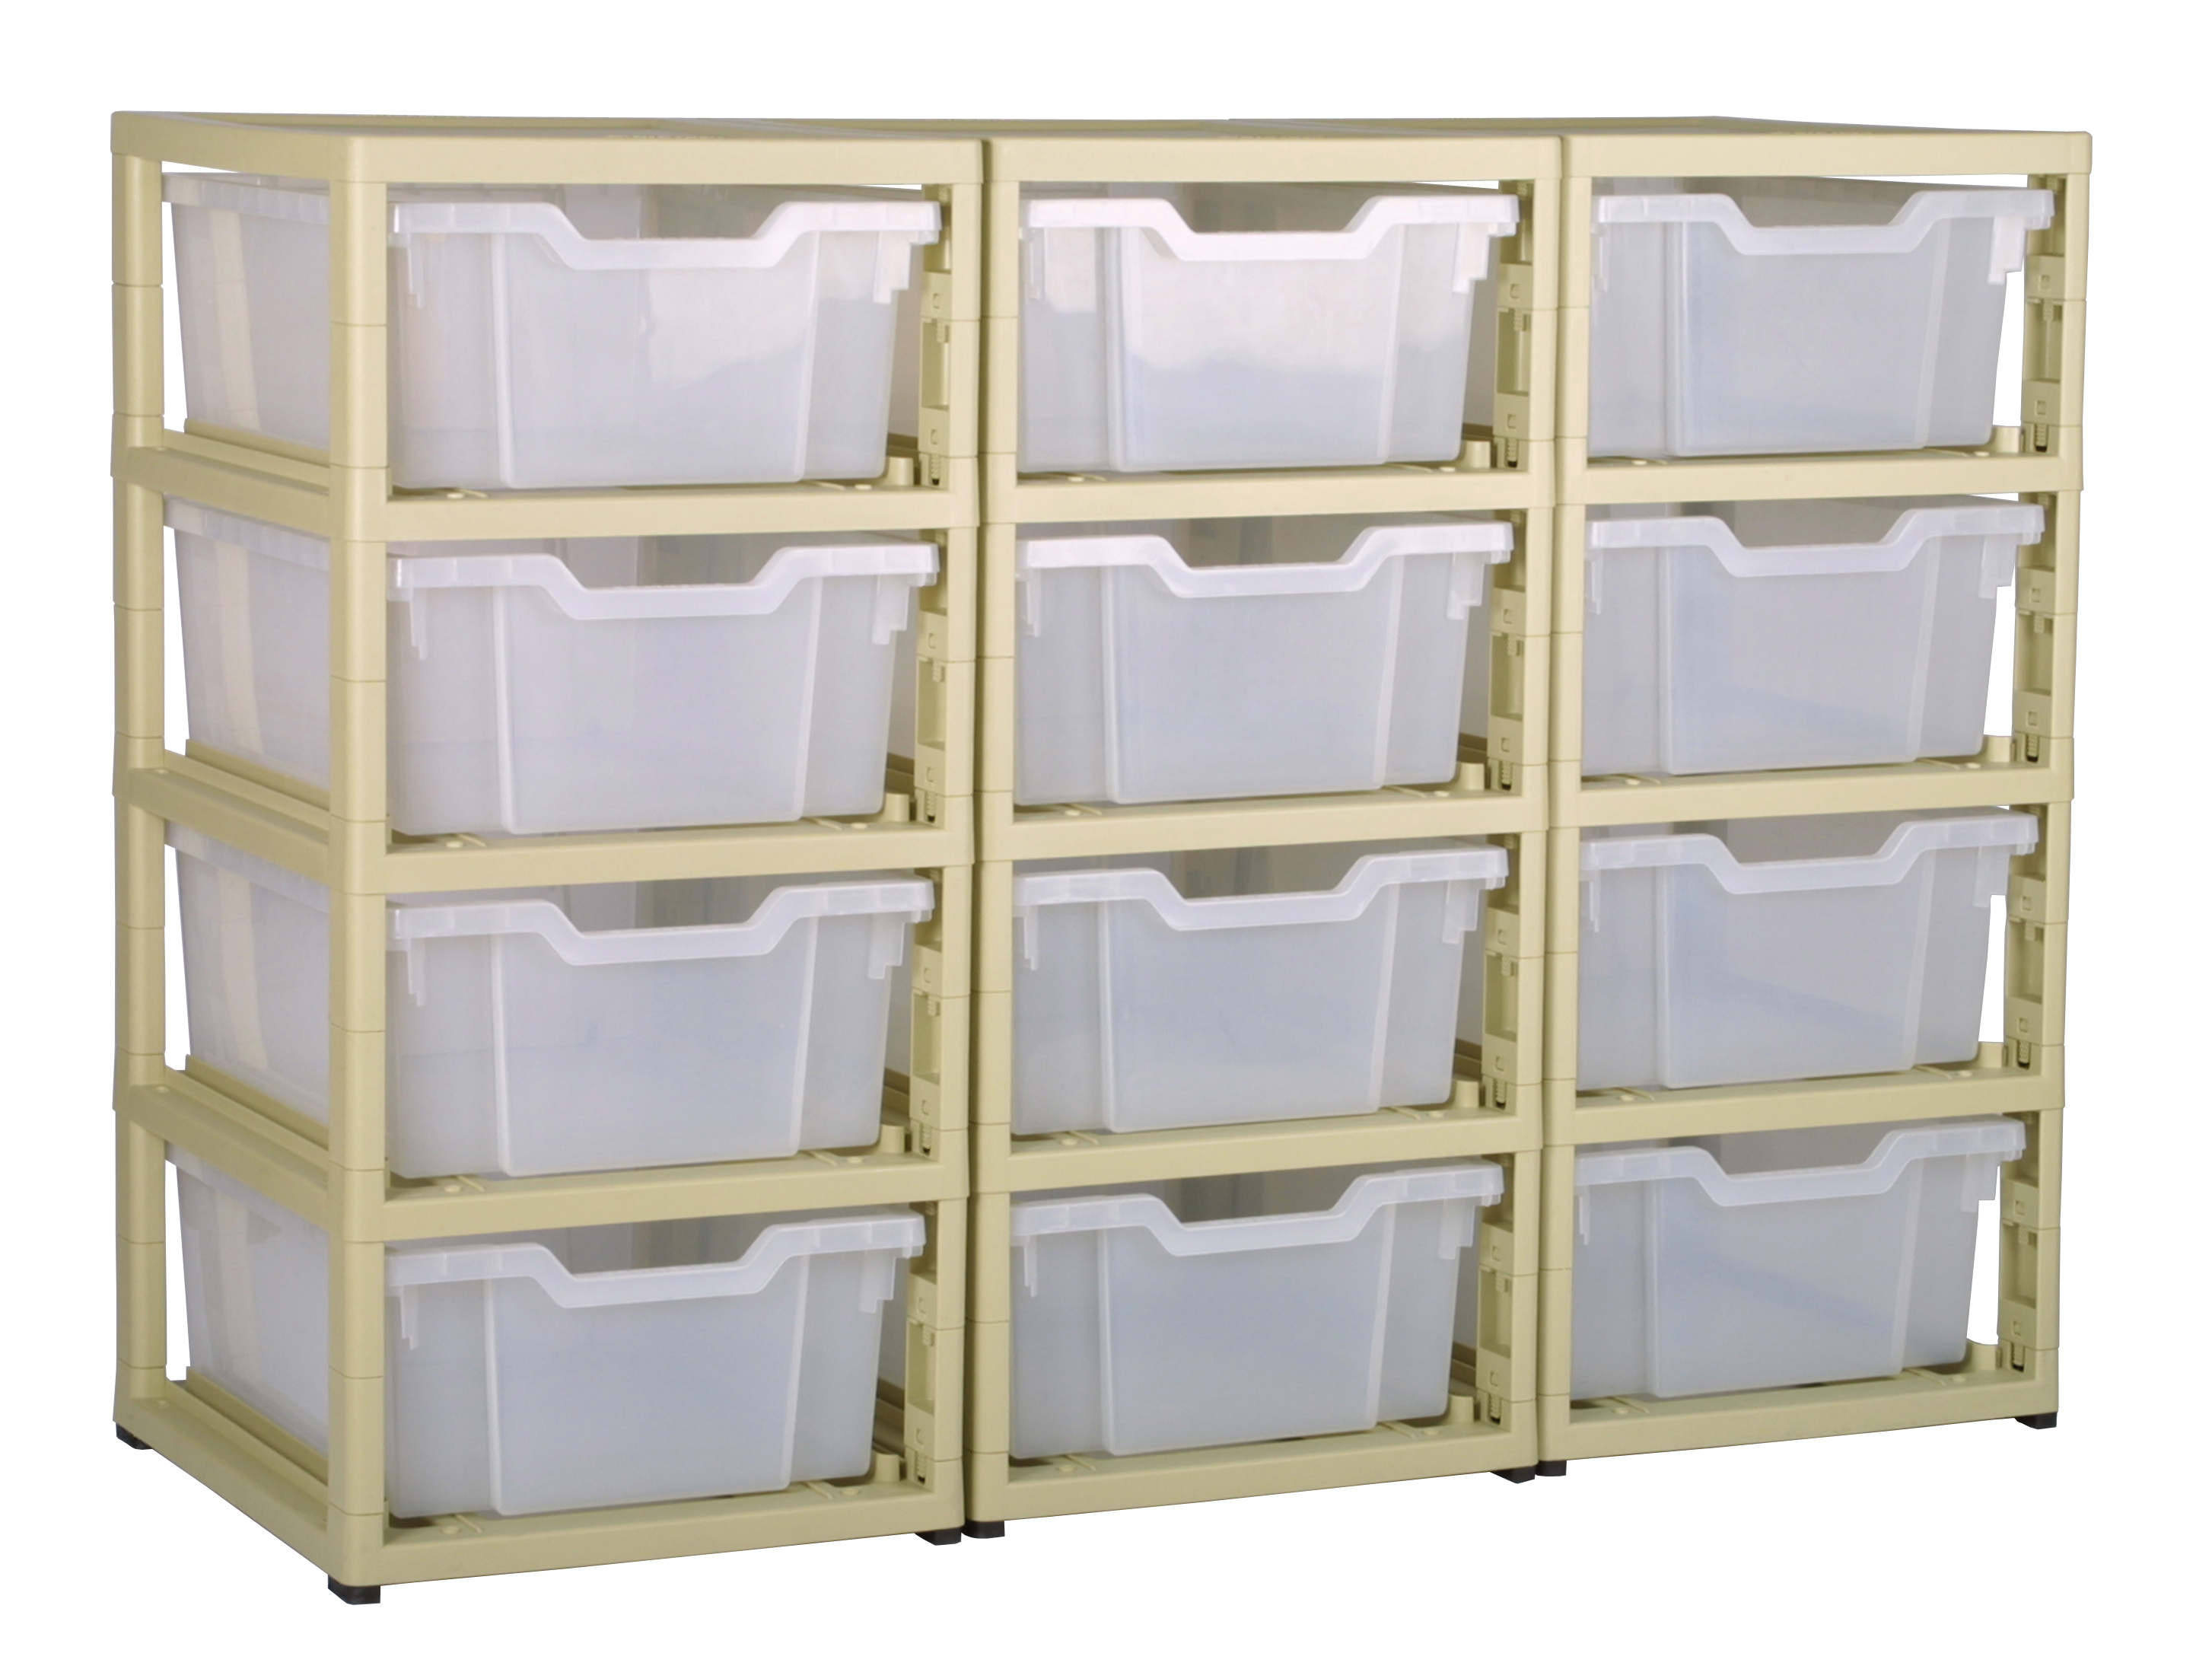 gratnells 12 tray storage units nursery office school